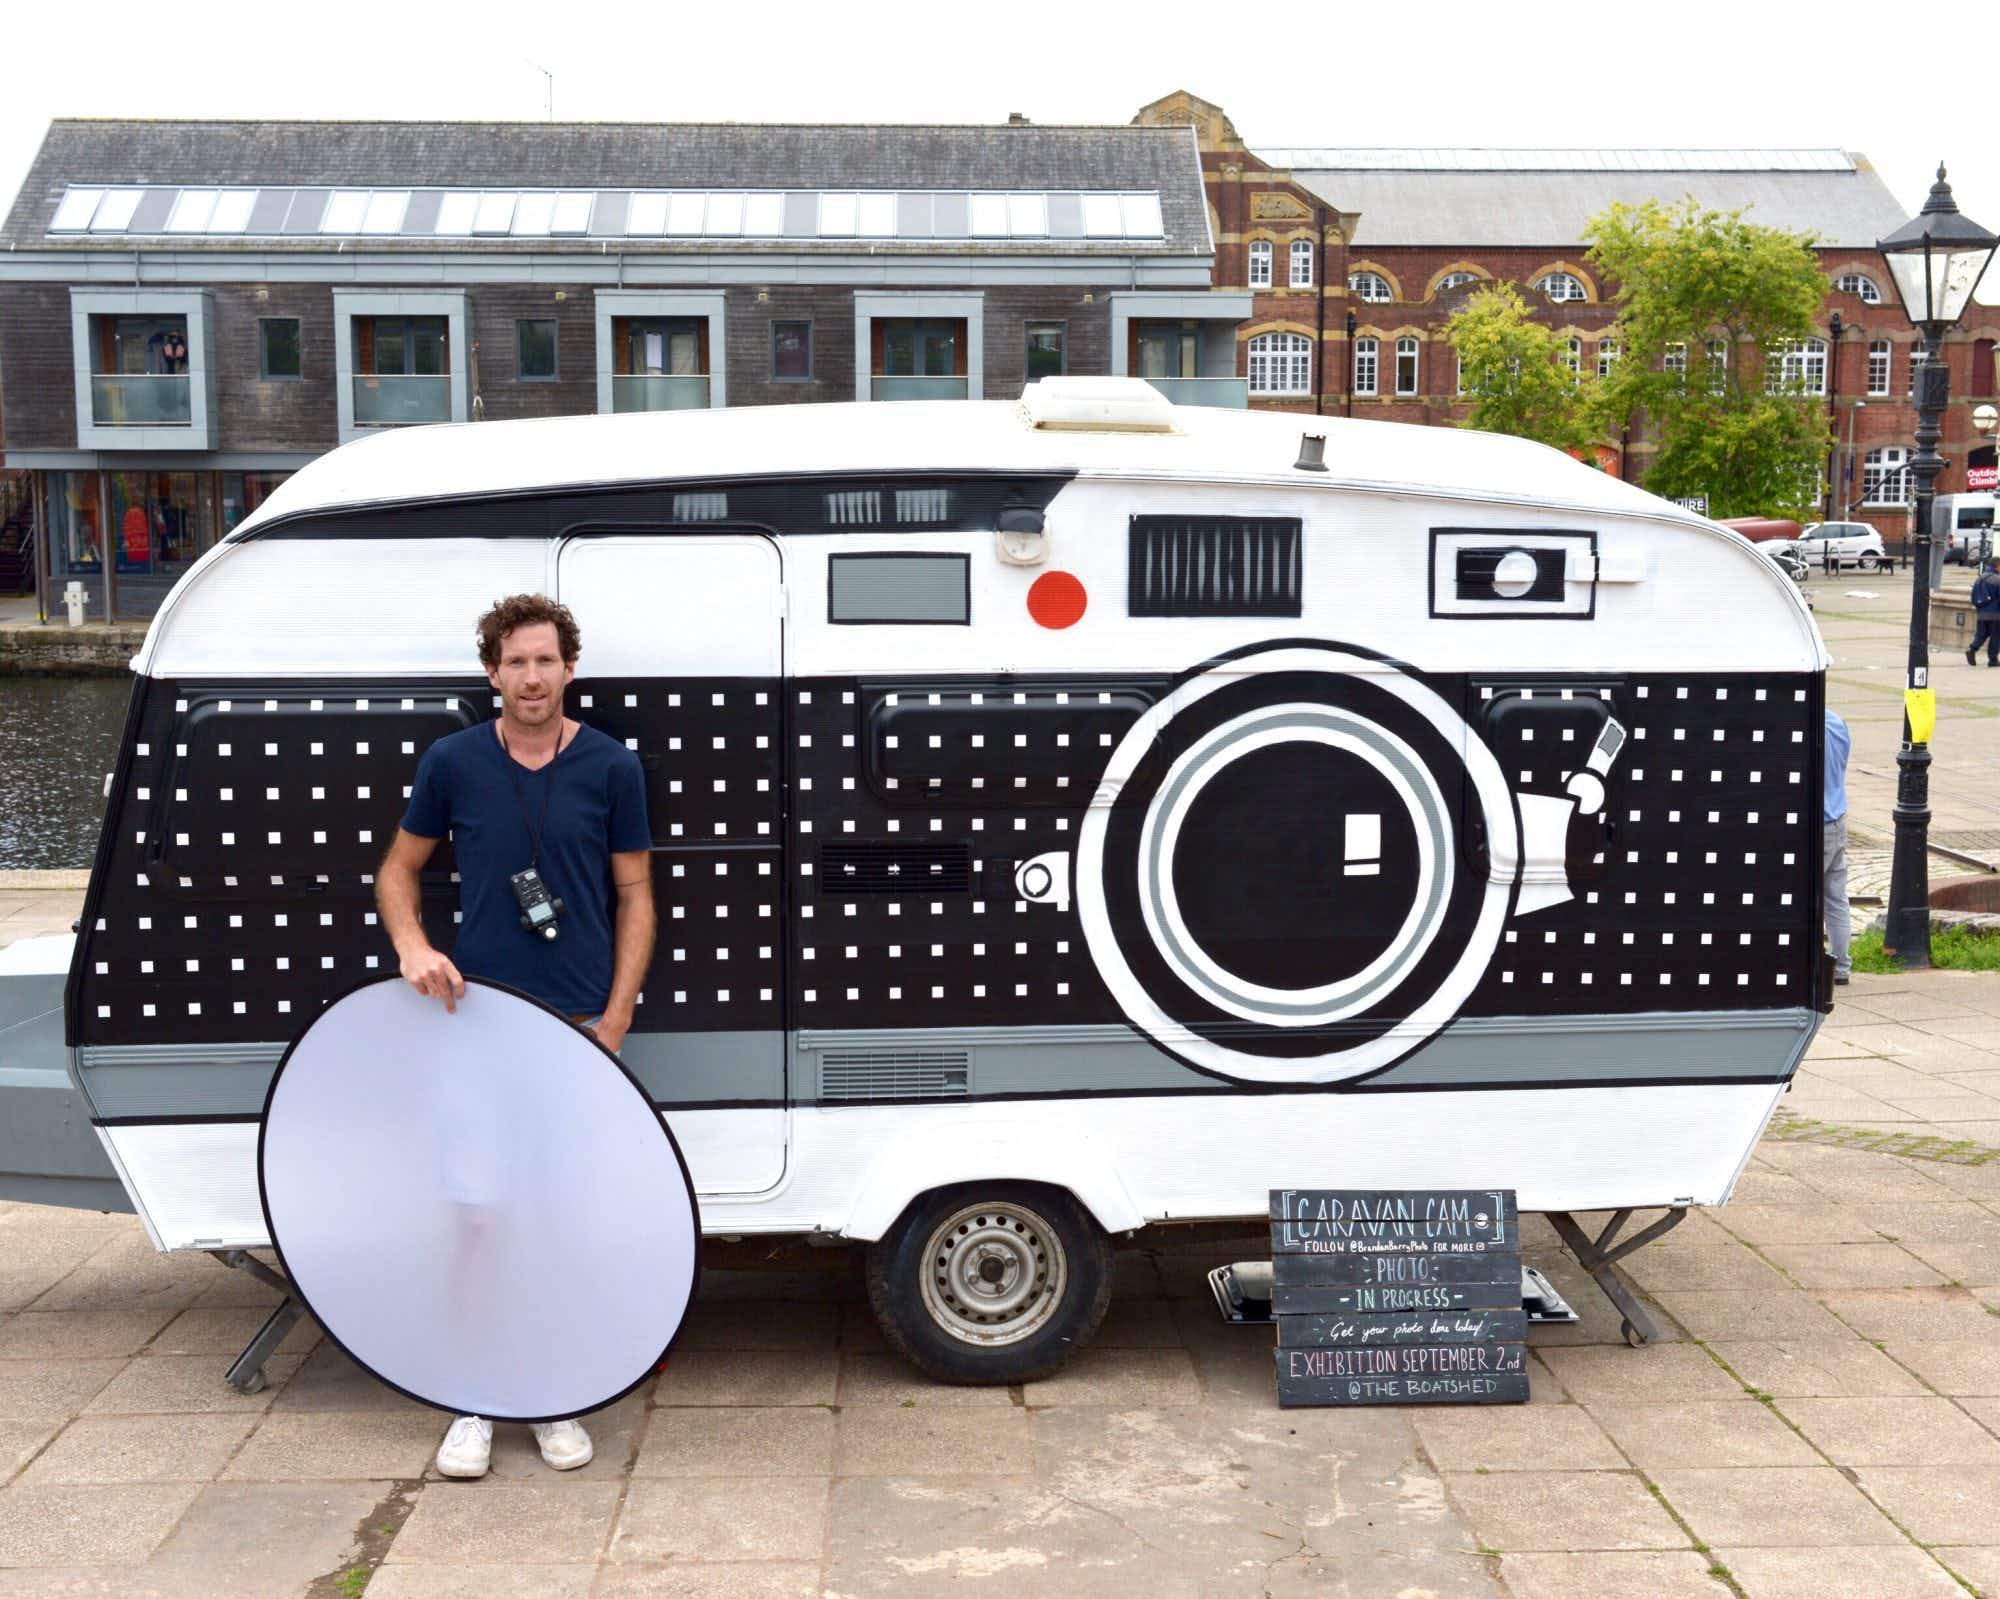 See how this old caravan was transformed into an enormous camera